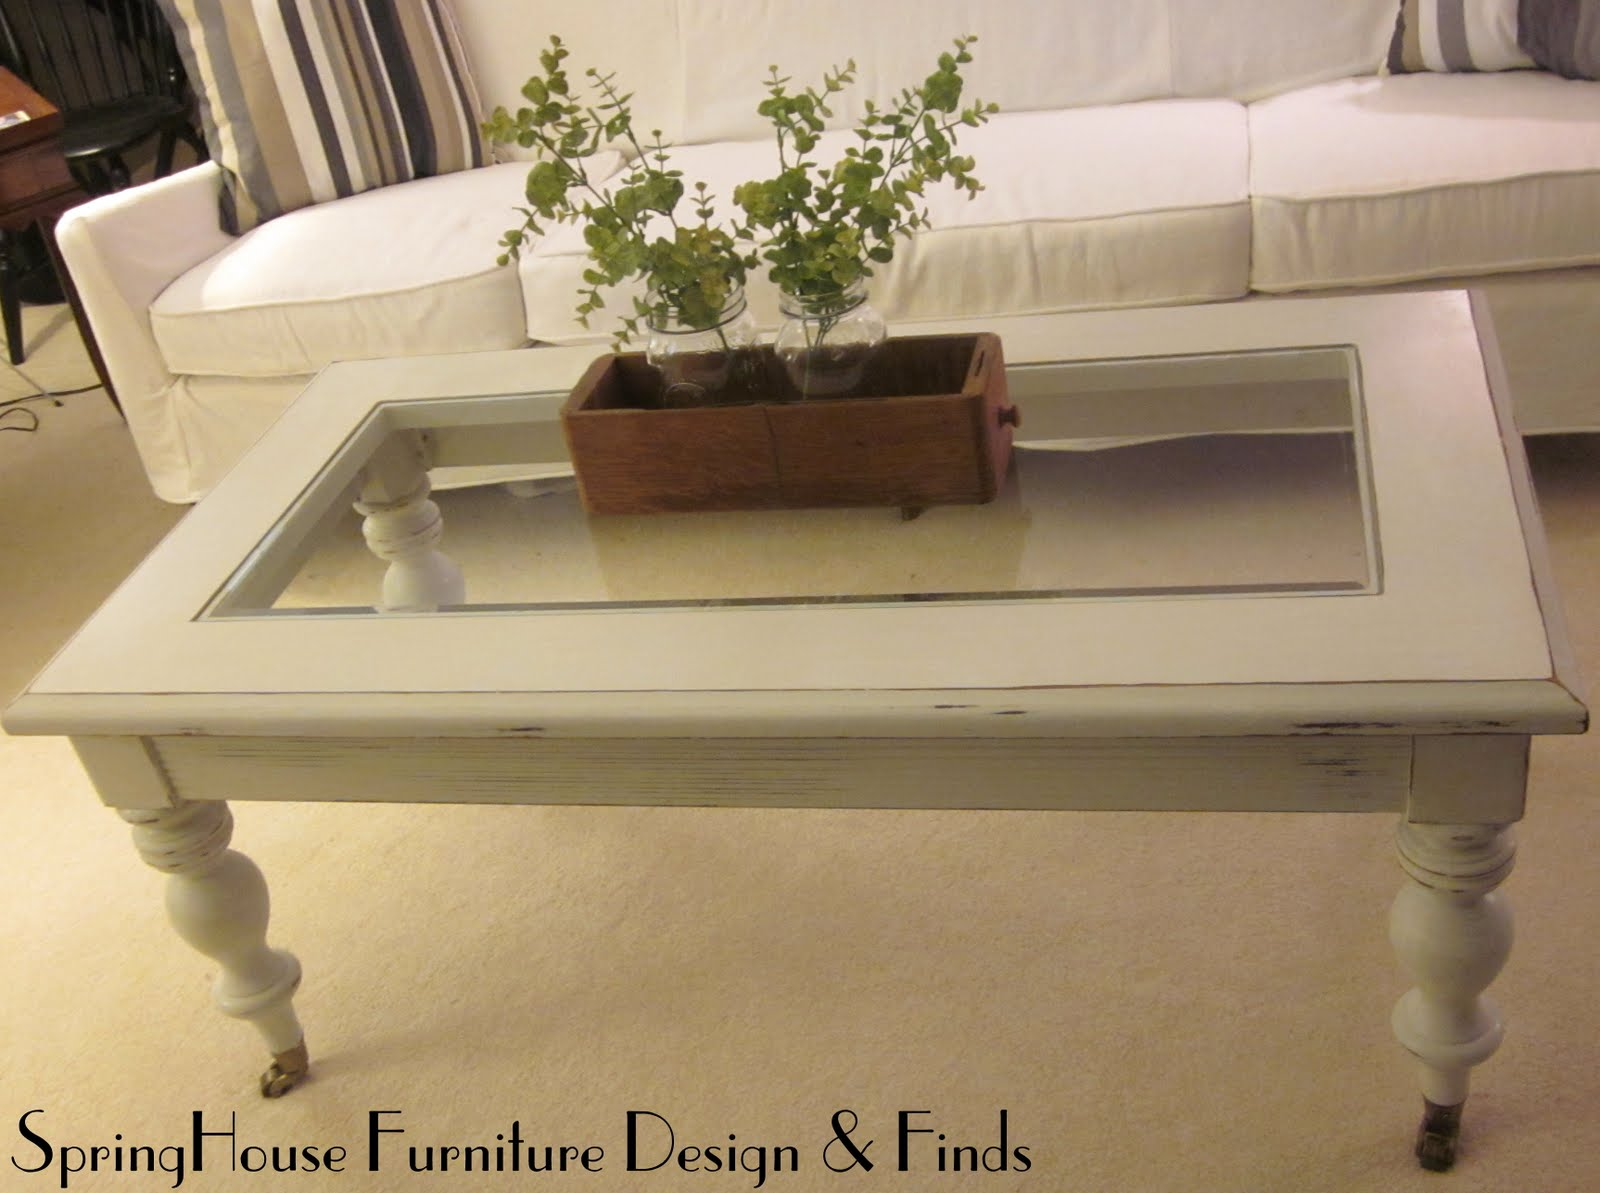 Springhouse furniture design finds white glass top for White and glass coffee table